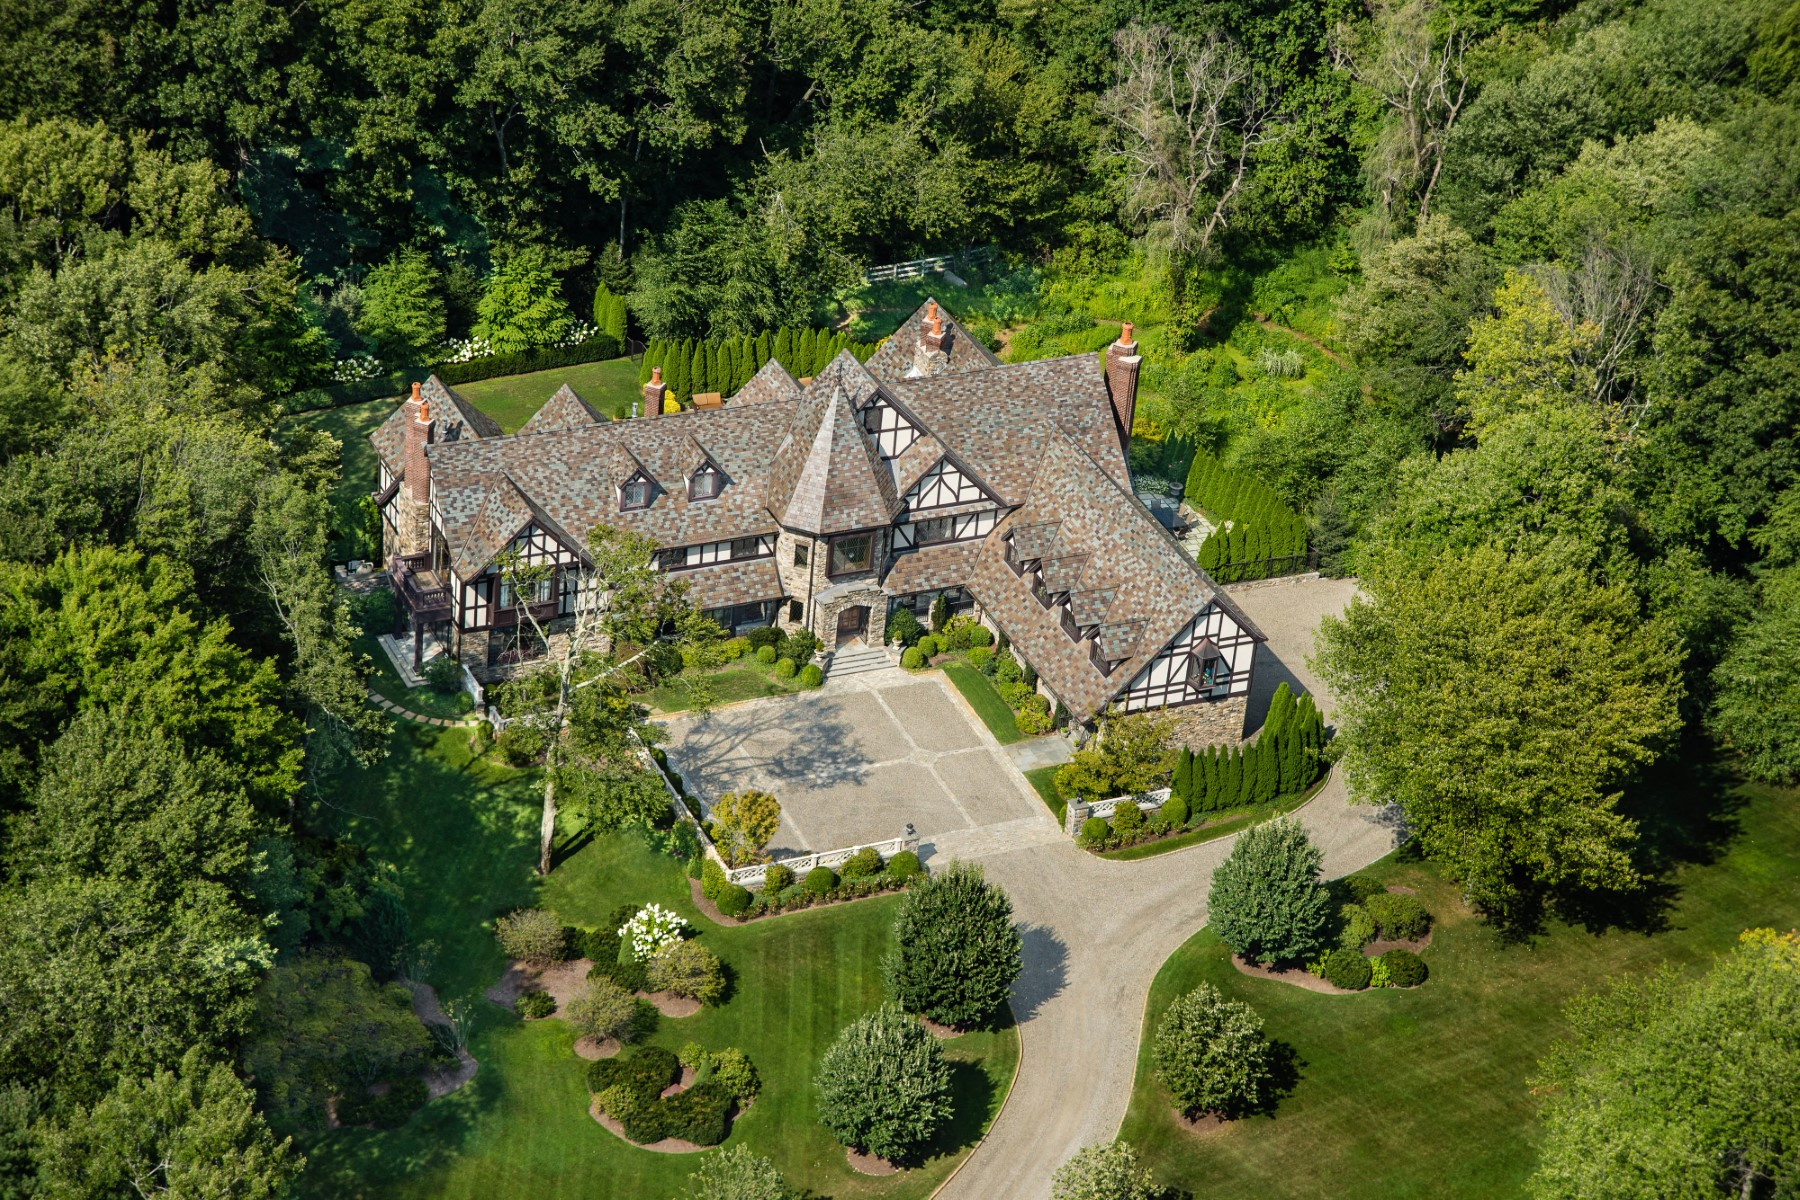 Single Family Home for Sale at Dramatic Estate with European Flair 918 North Street Greenwich, Connecticut 06831 United States